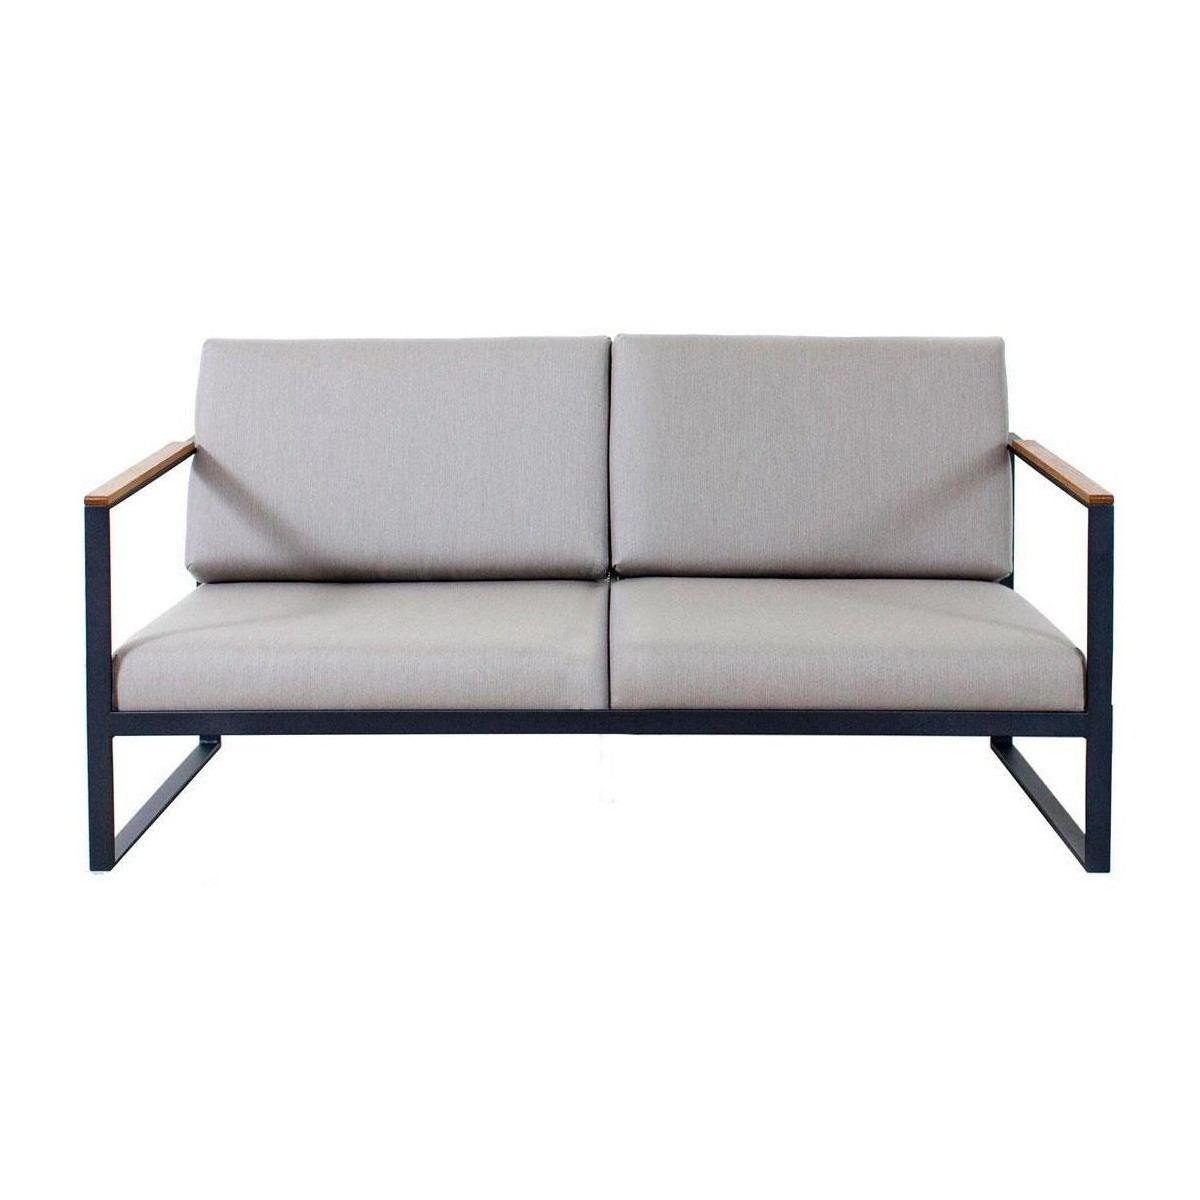 Garden Easy 2 Seater Outdoor Sofa